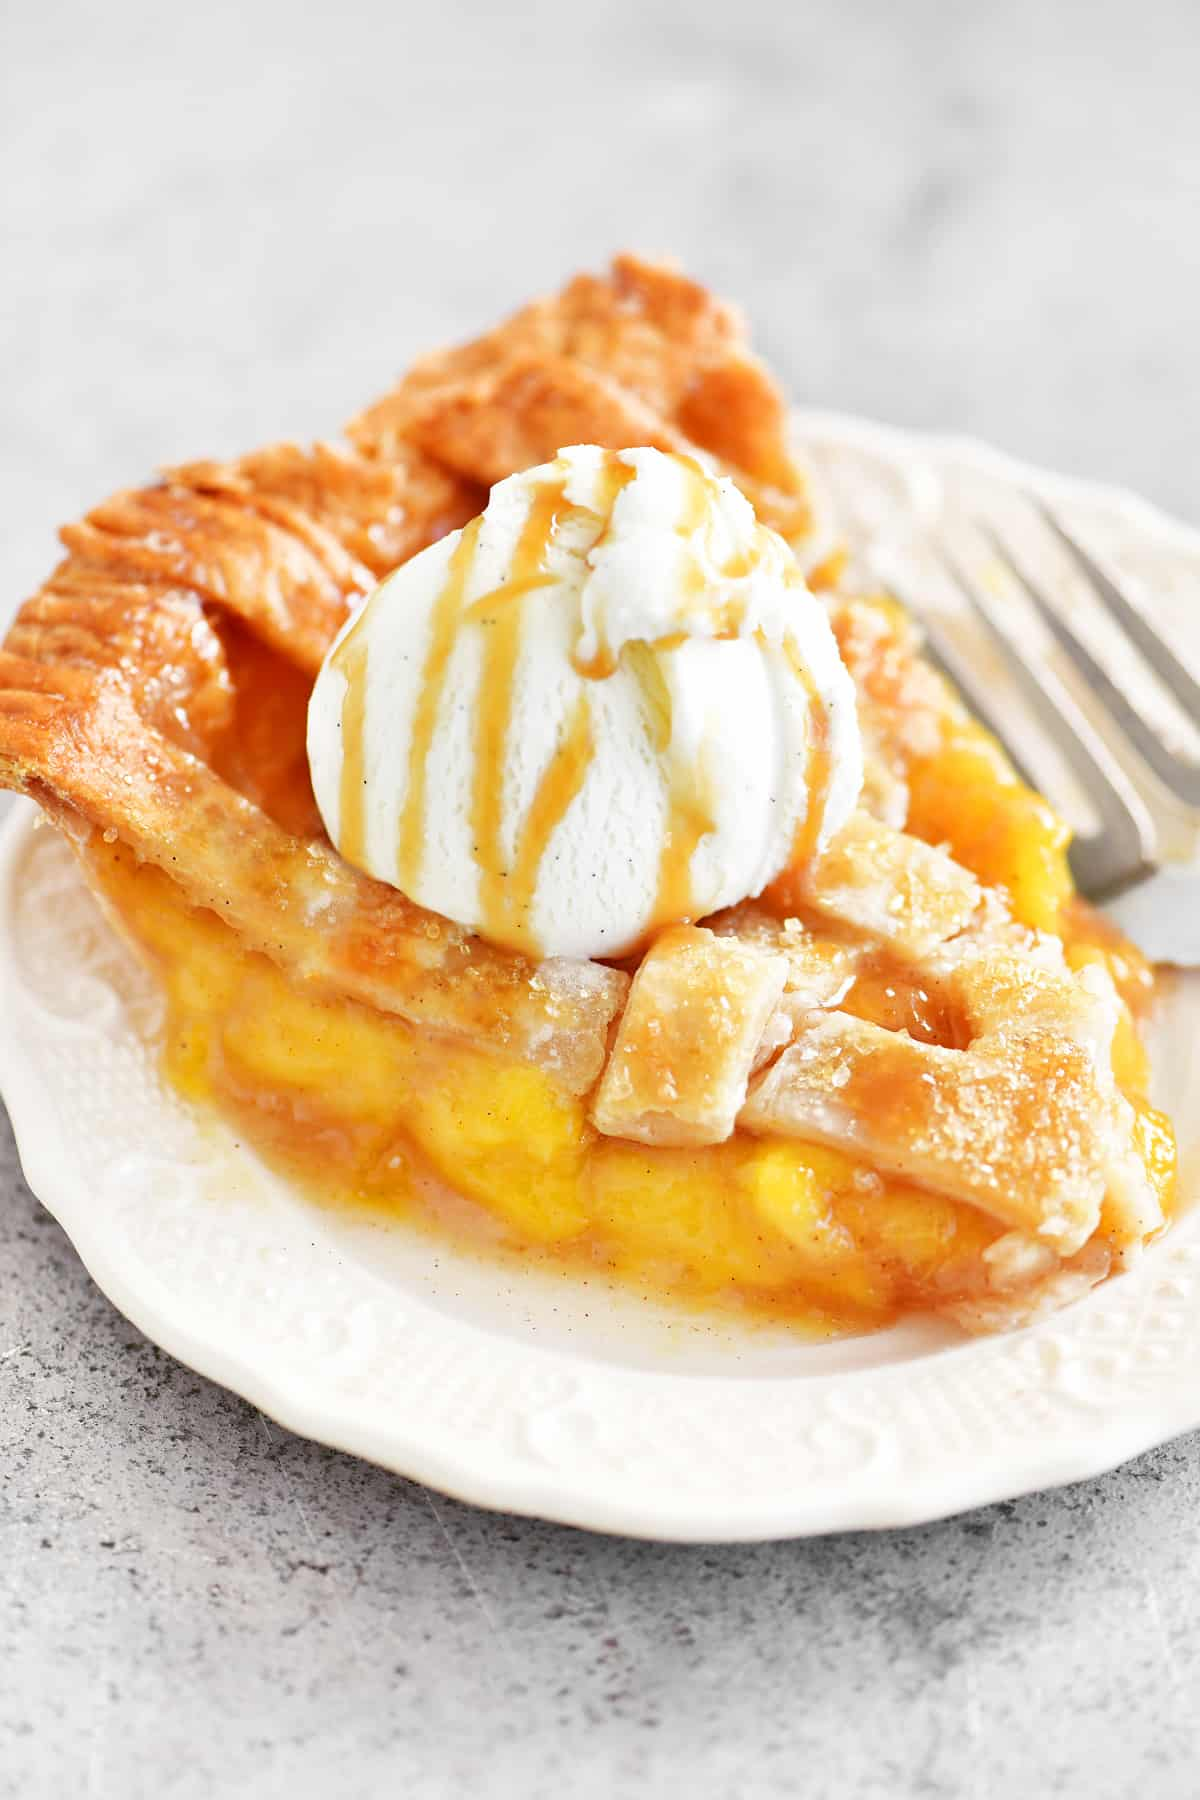 slice of peach pie with ice cream on top